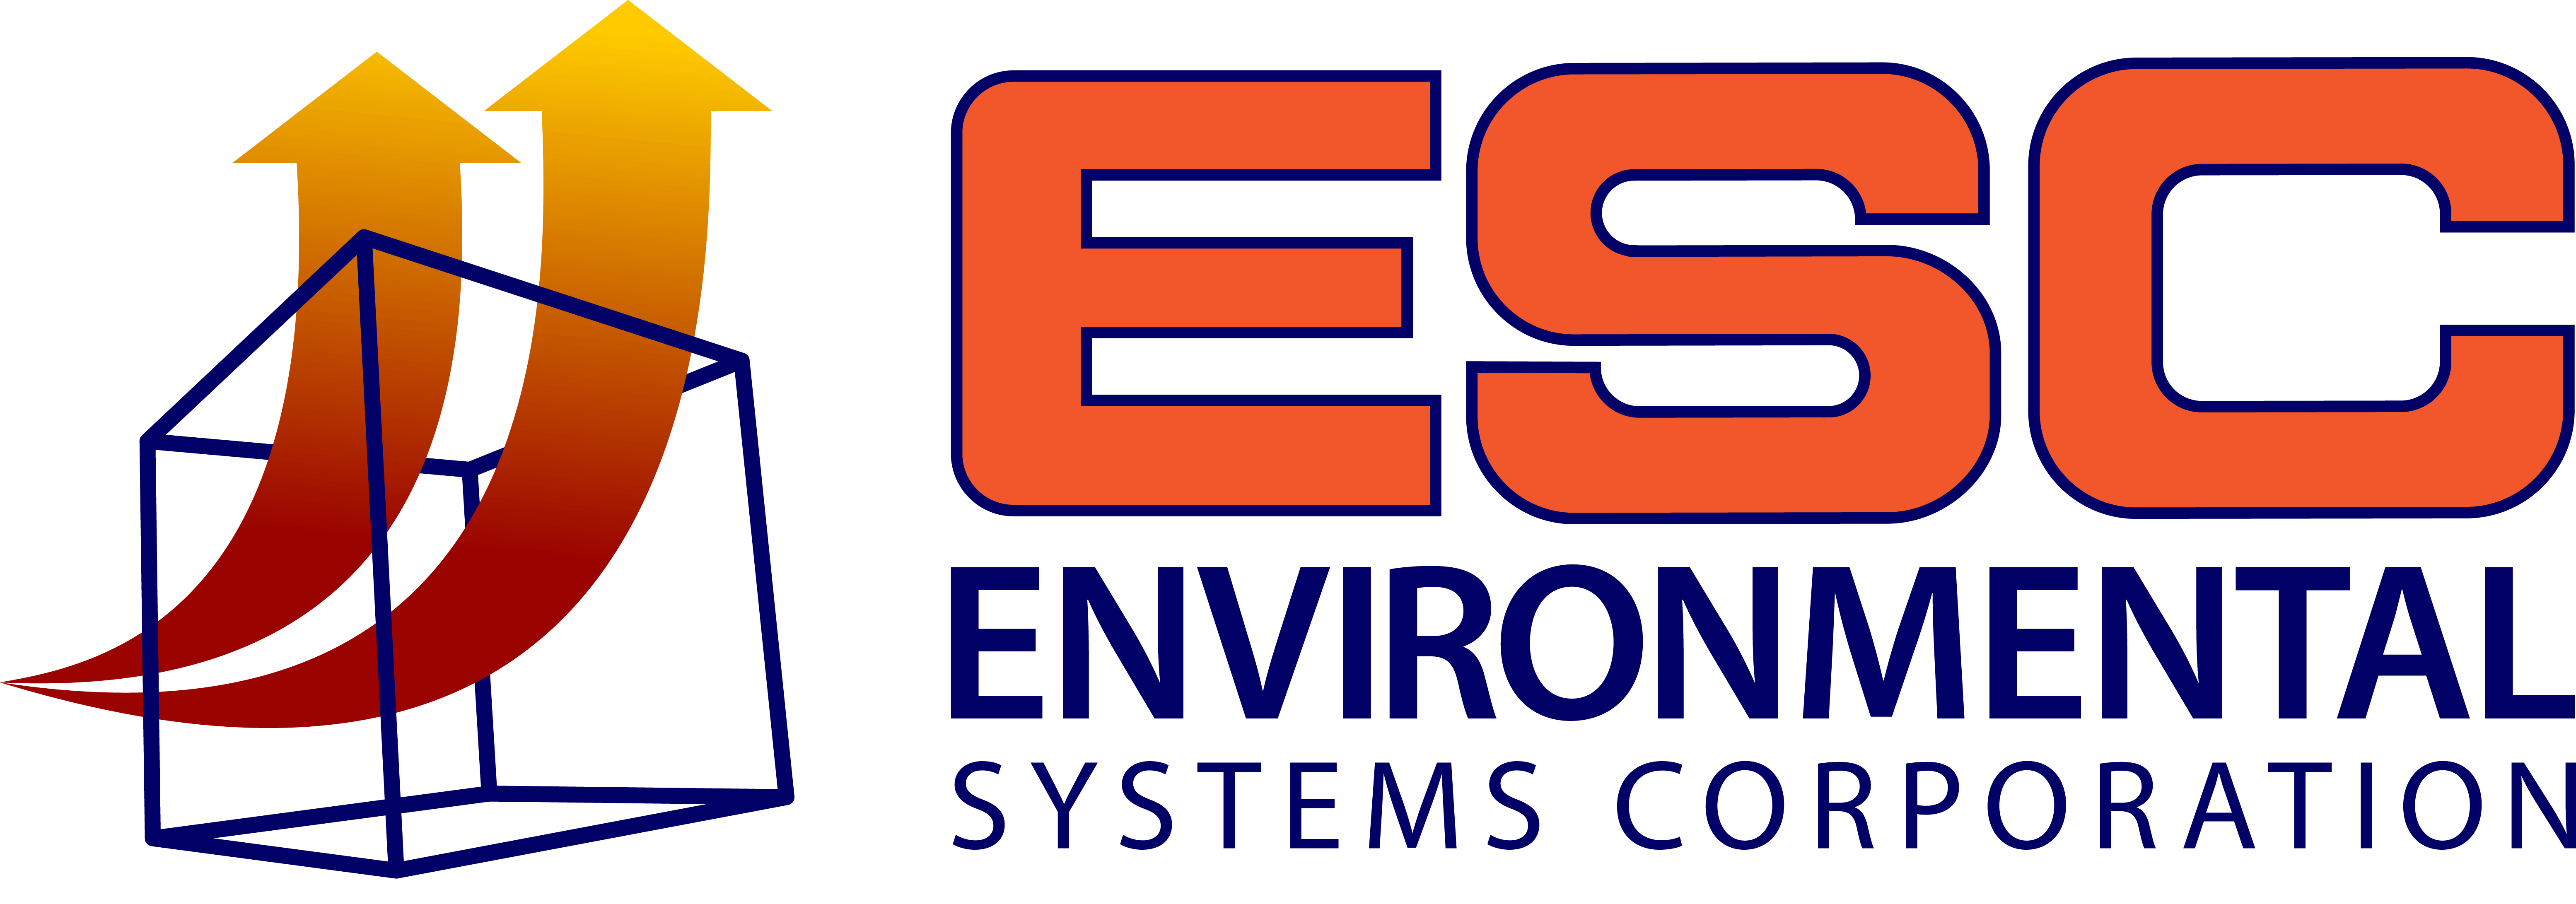 Environmental Systems Corporation